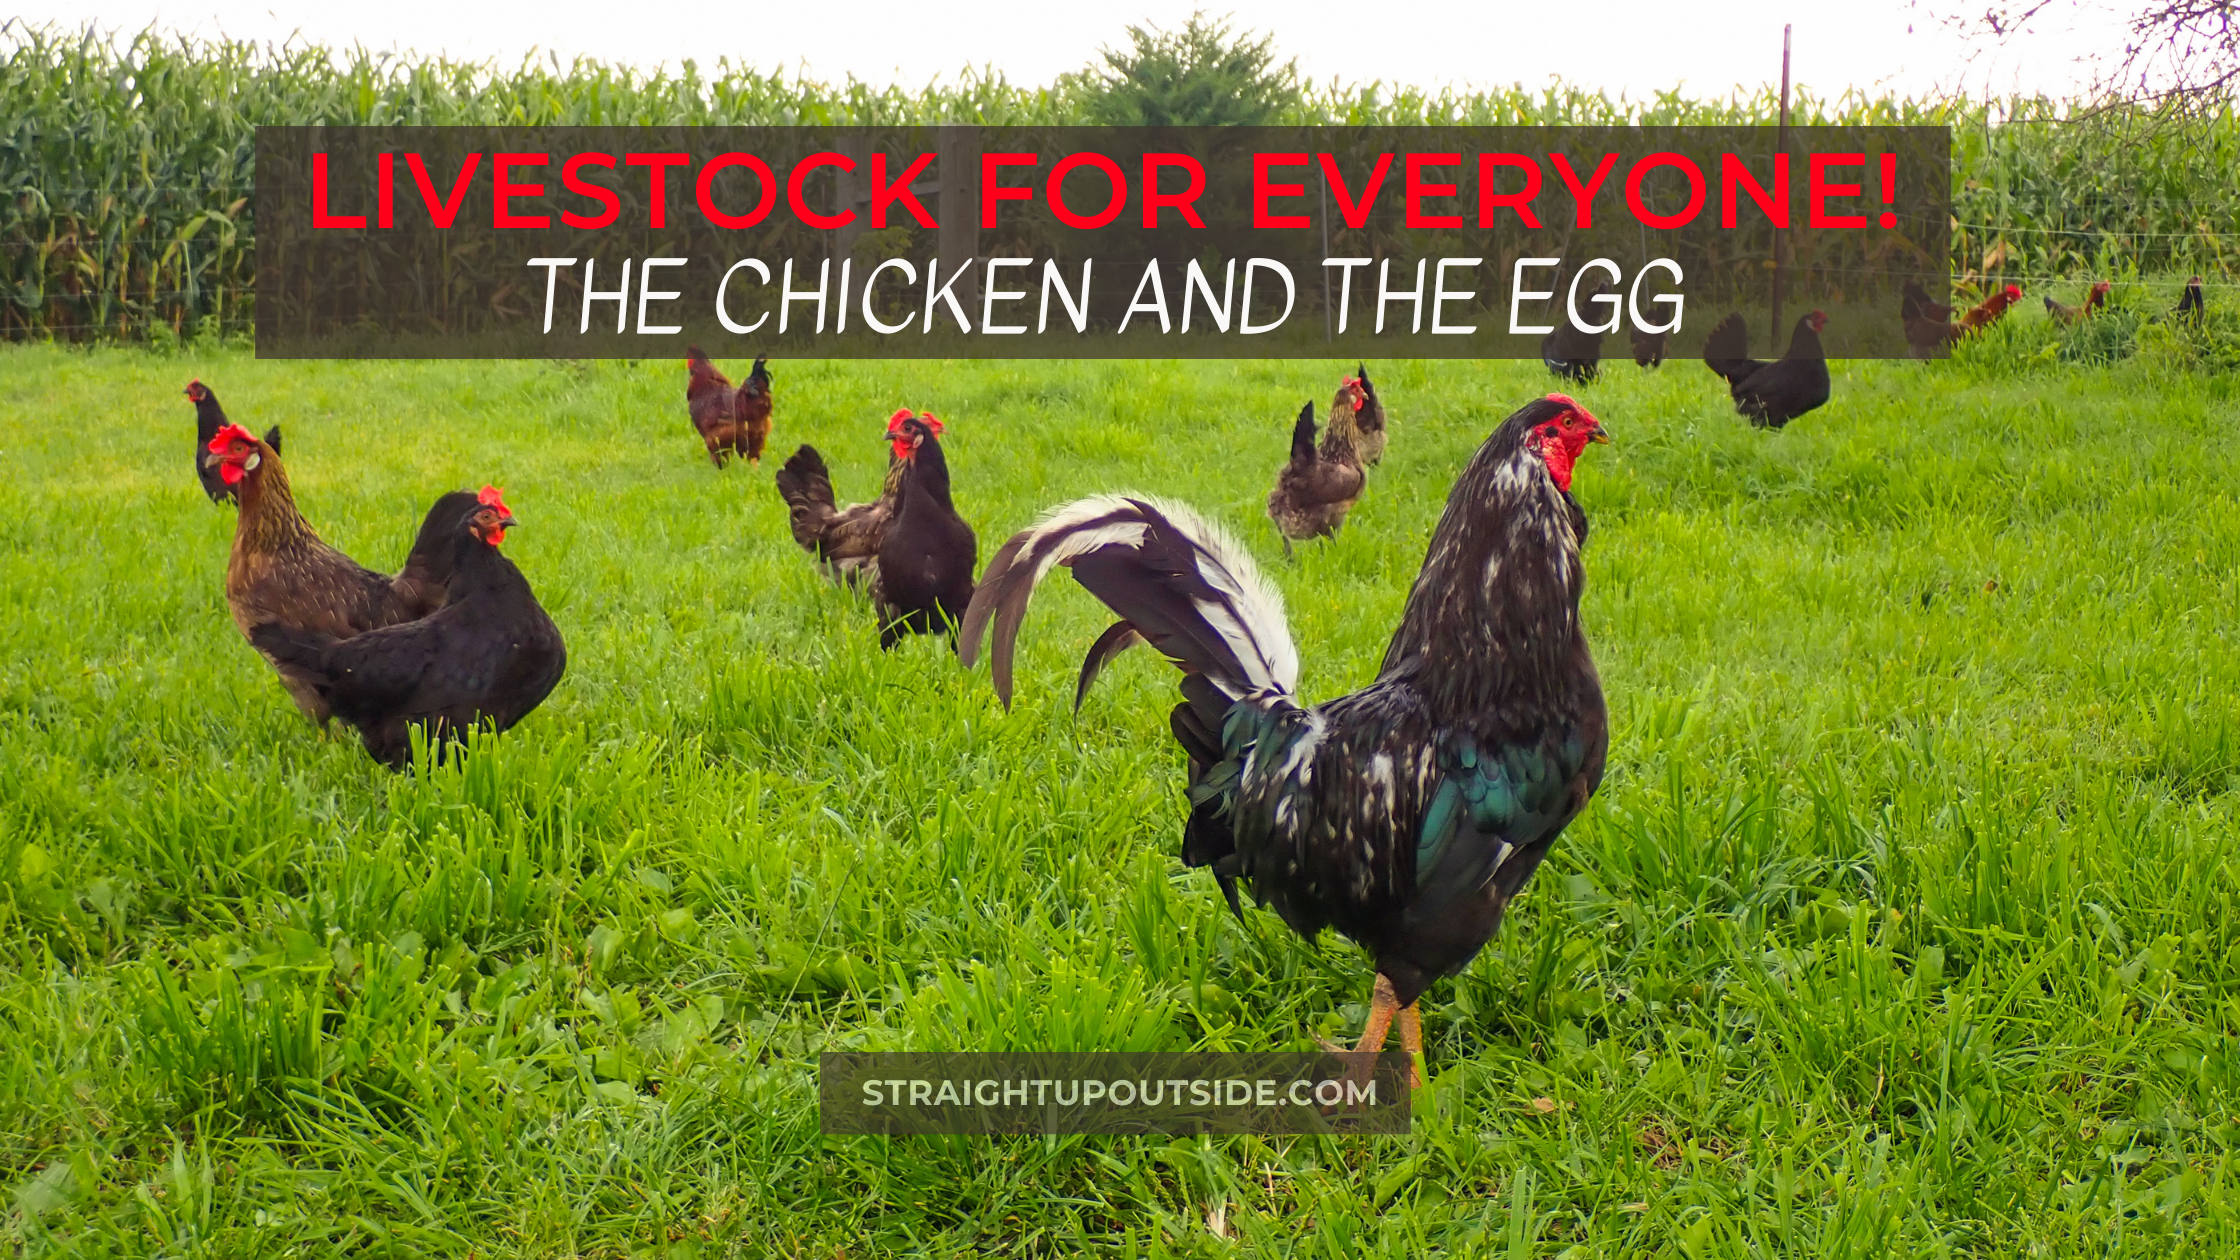 Livestock For Everyone! The Chicken and the Egg